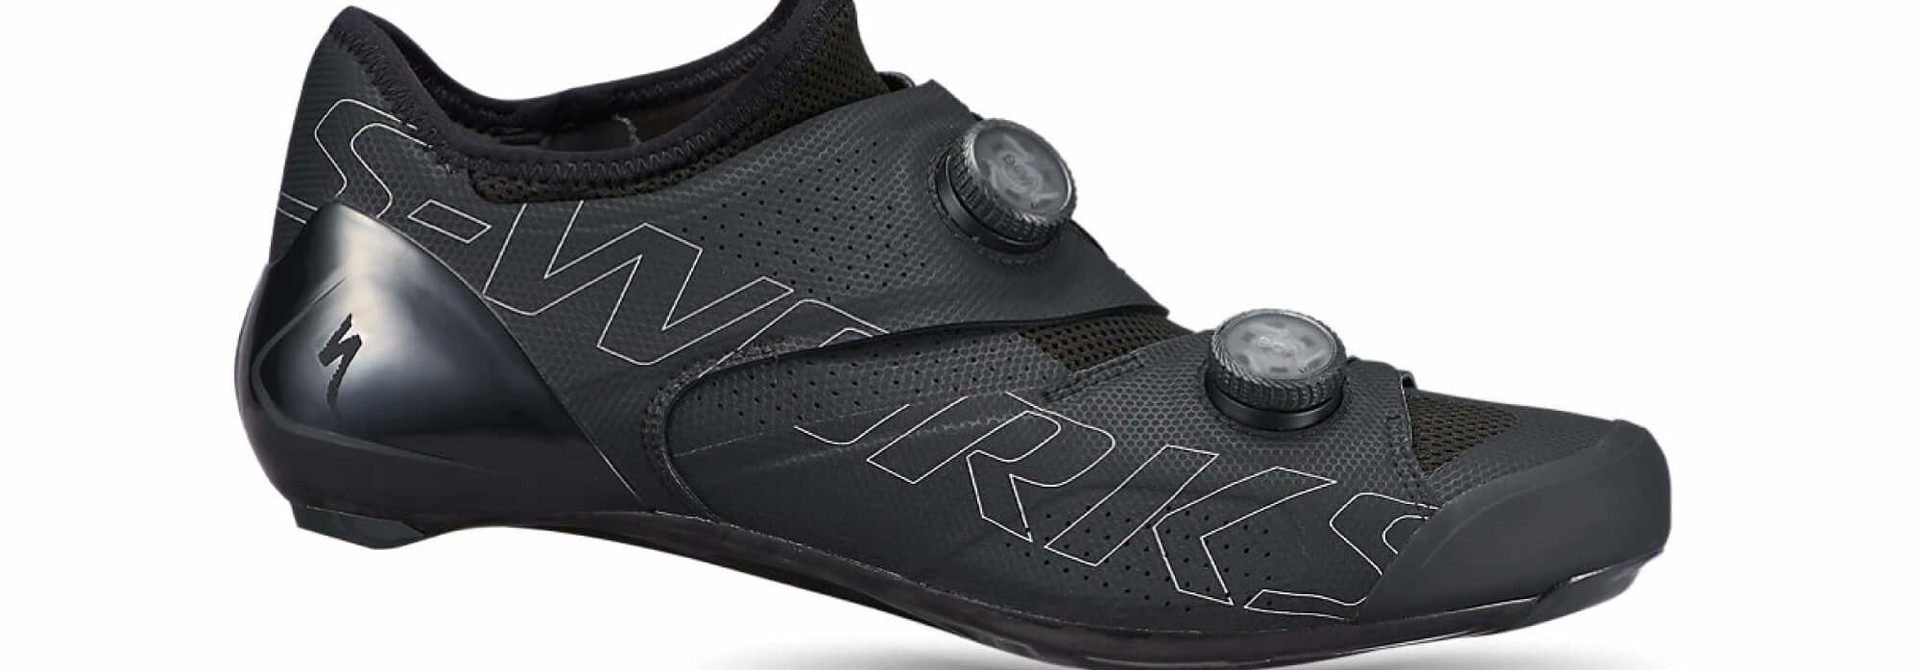 S-Works Ares Road Shoes 2021